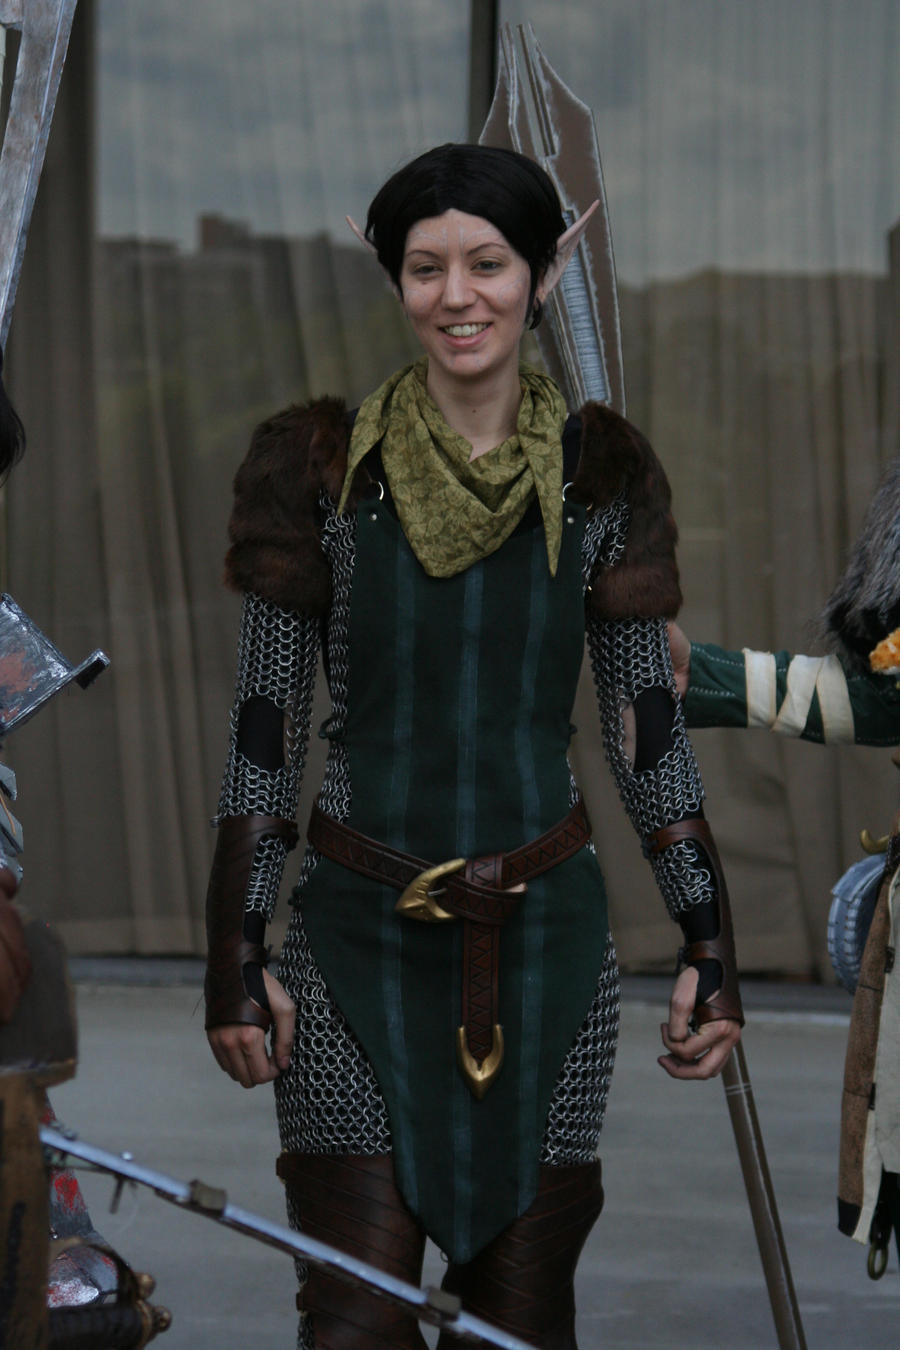 Happy Merrill is happy by Xavietta